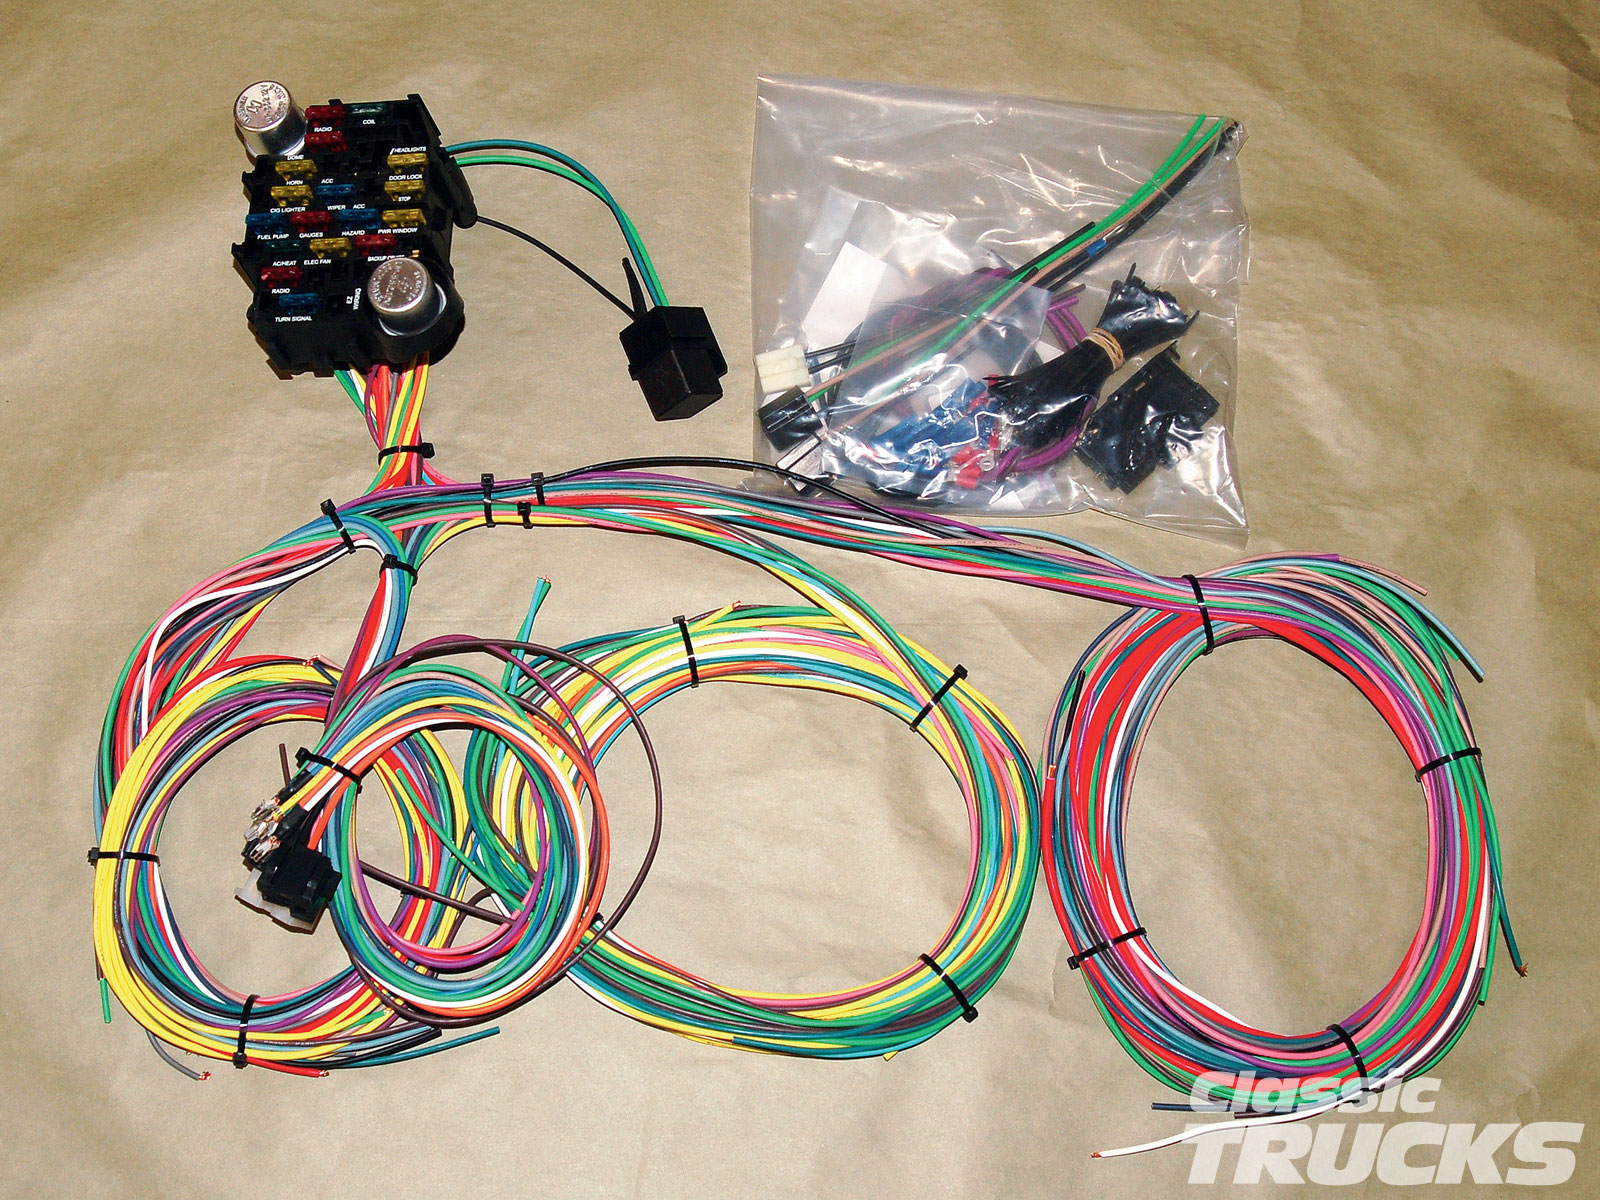 1010clt 02 o aftermarket wiring harness install kit?resize=640%2C480 how much does a wire harness cost to replace hobbiesxstyle how much does it cost to replace a wiring harness at virtualis.co